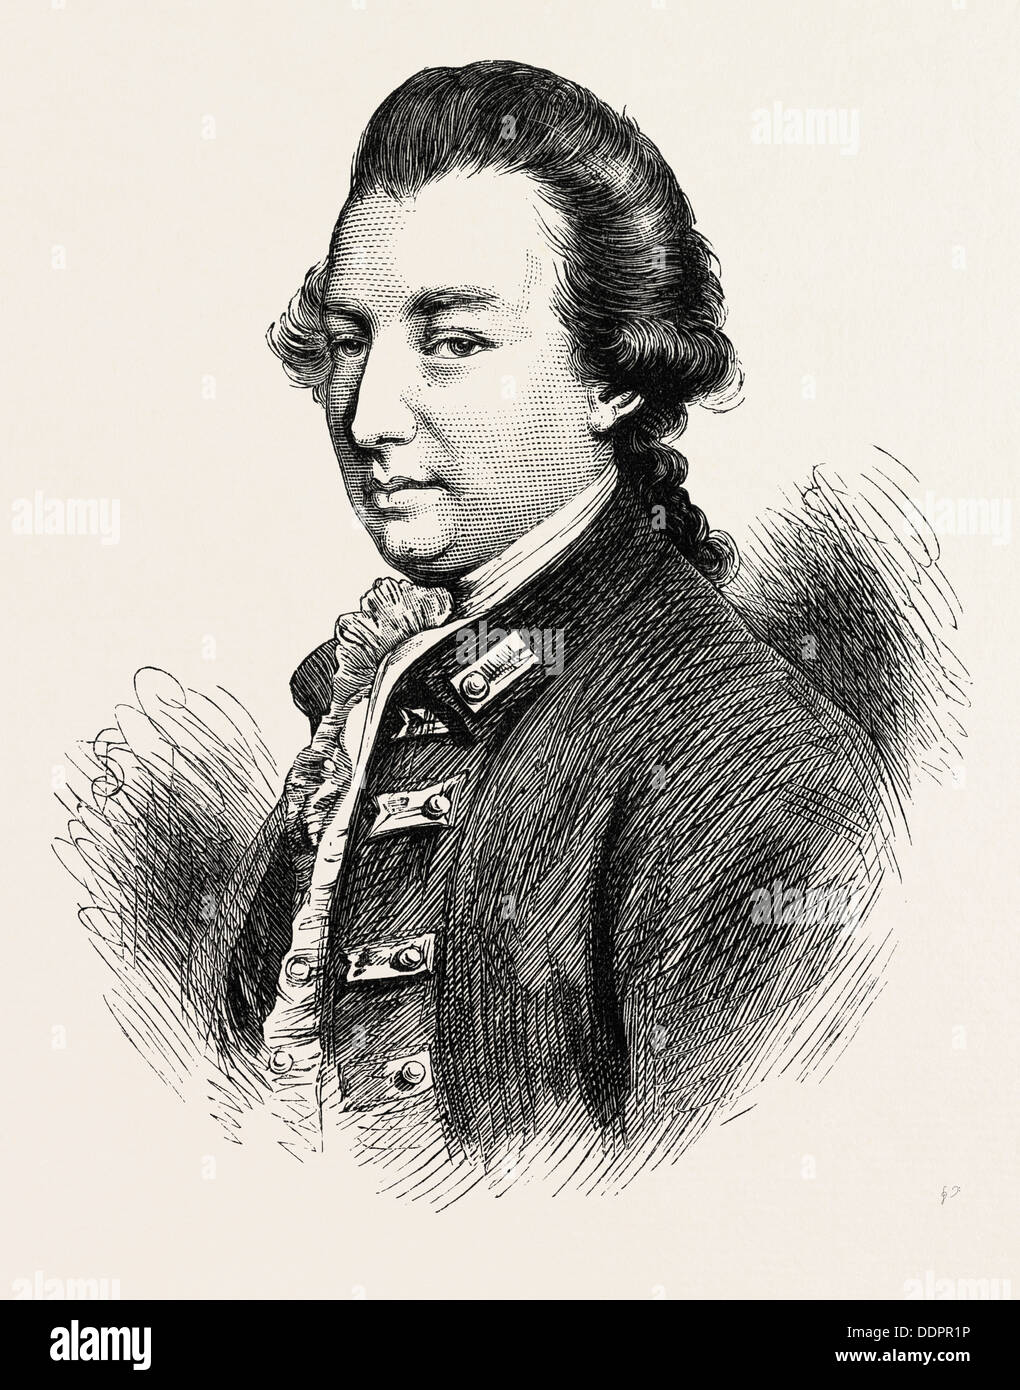 lord cornwallis was a british army officer and colonial